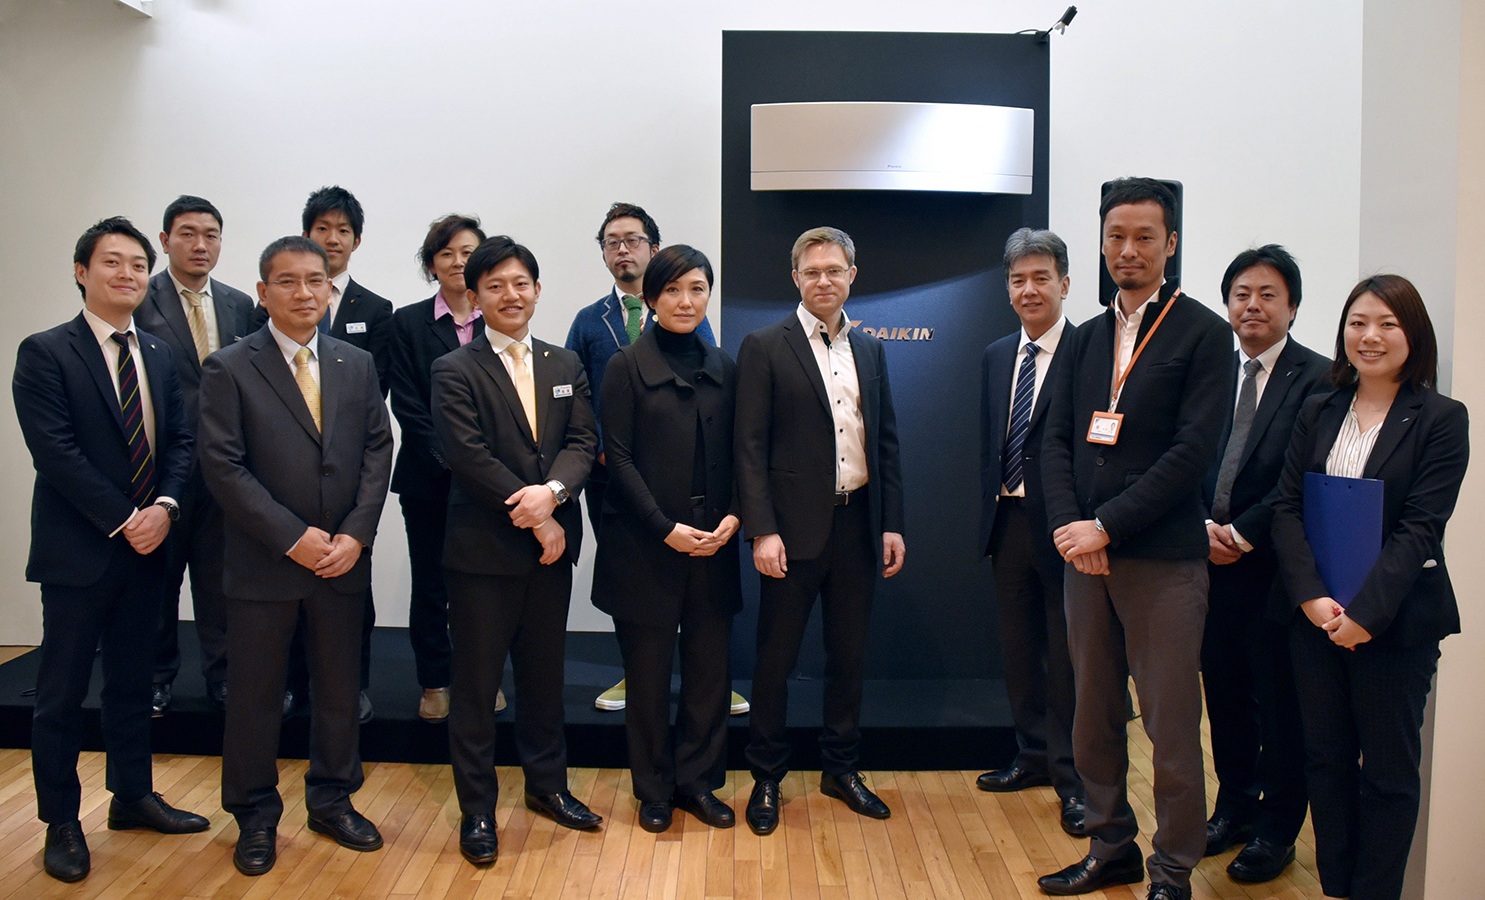 Alexander Schlag and Kyoko Tanaka (center) from yellow design gmbh with responsible members from Daikin Headquarters in Osaka, Tokio and Technology and Innovation Center in Settsu.